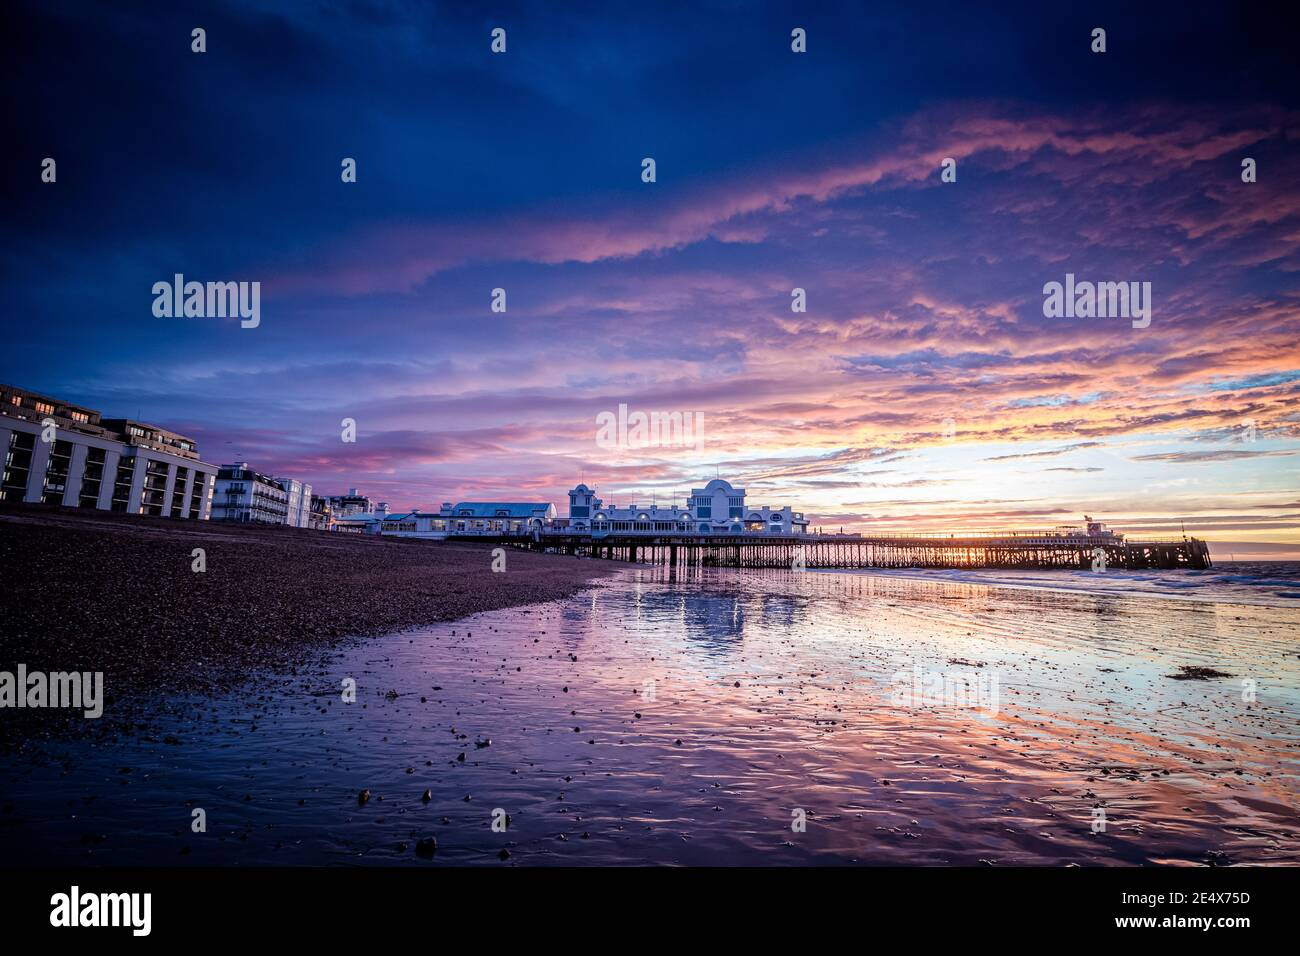 Sunrise at South parade pier in Southsea, Portsmouth Stock Photo